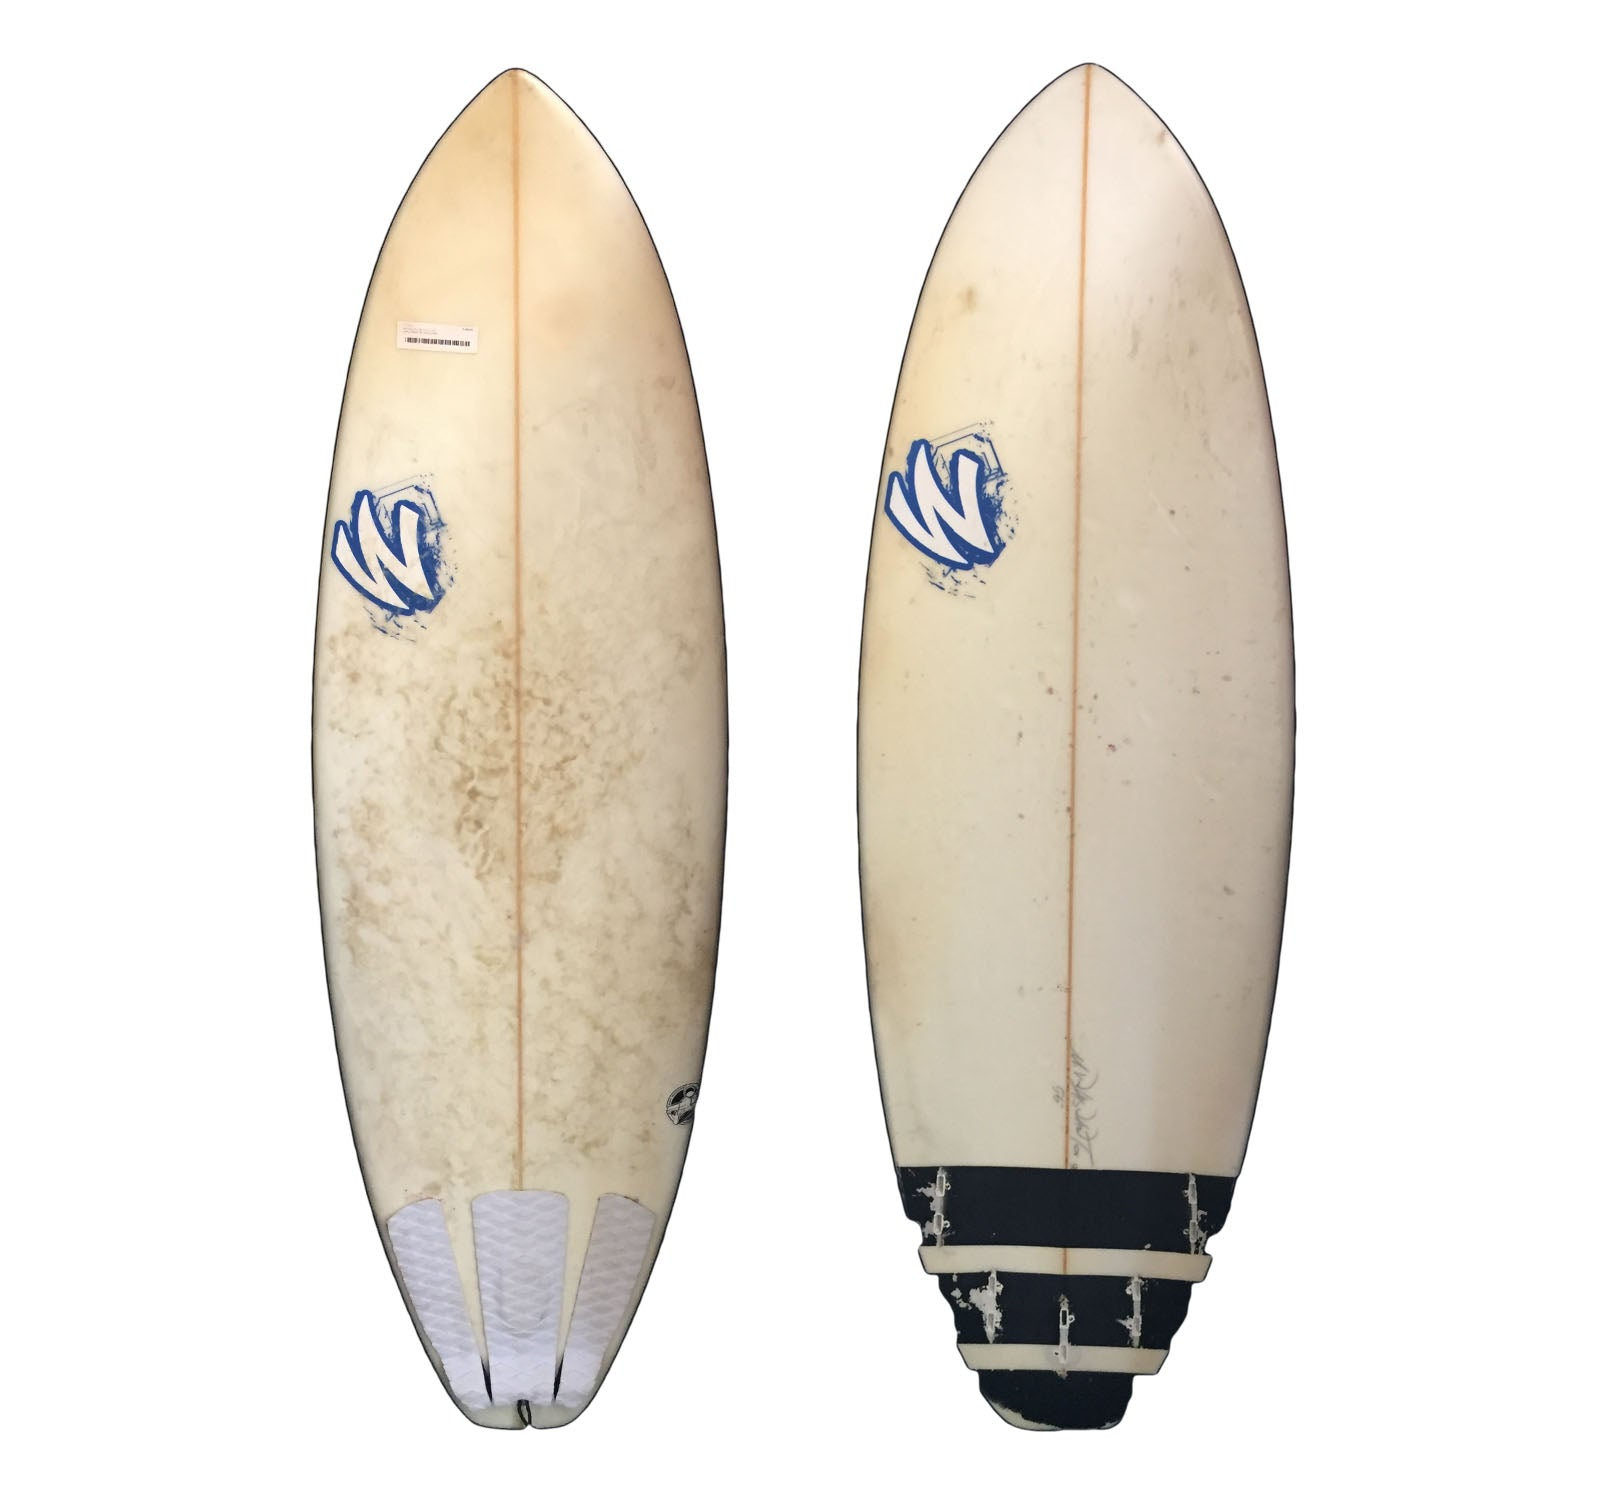 Whisnant 5'6 Used Surfboard